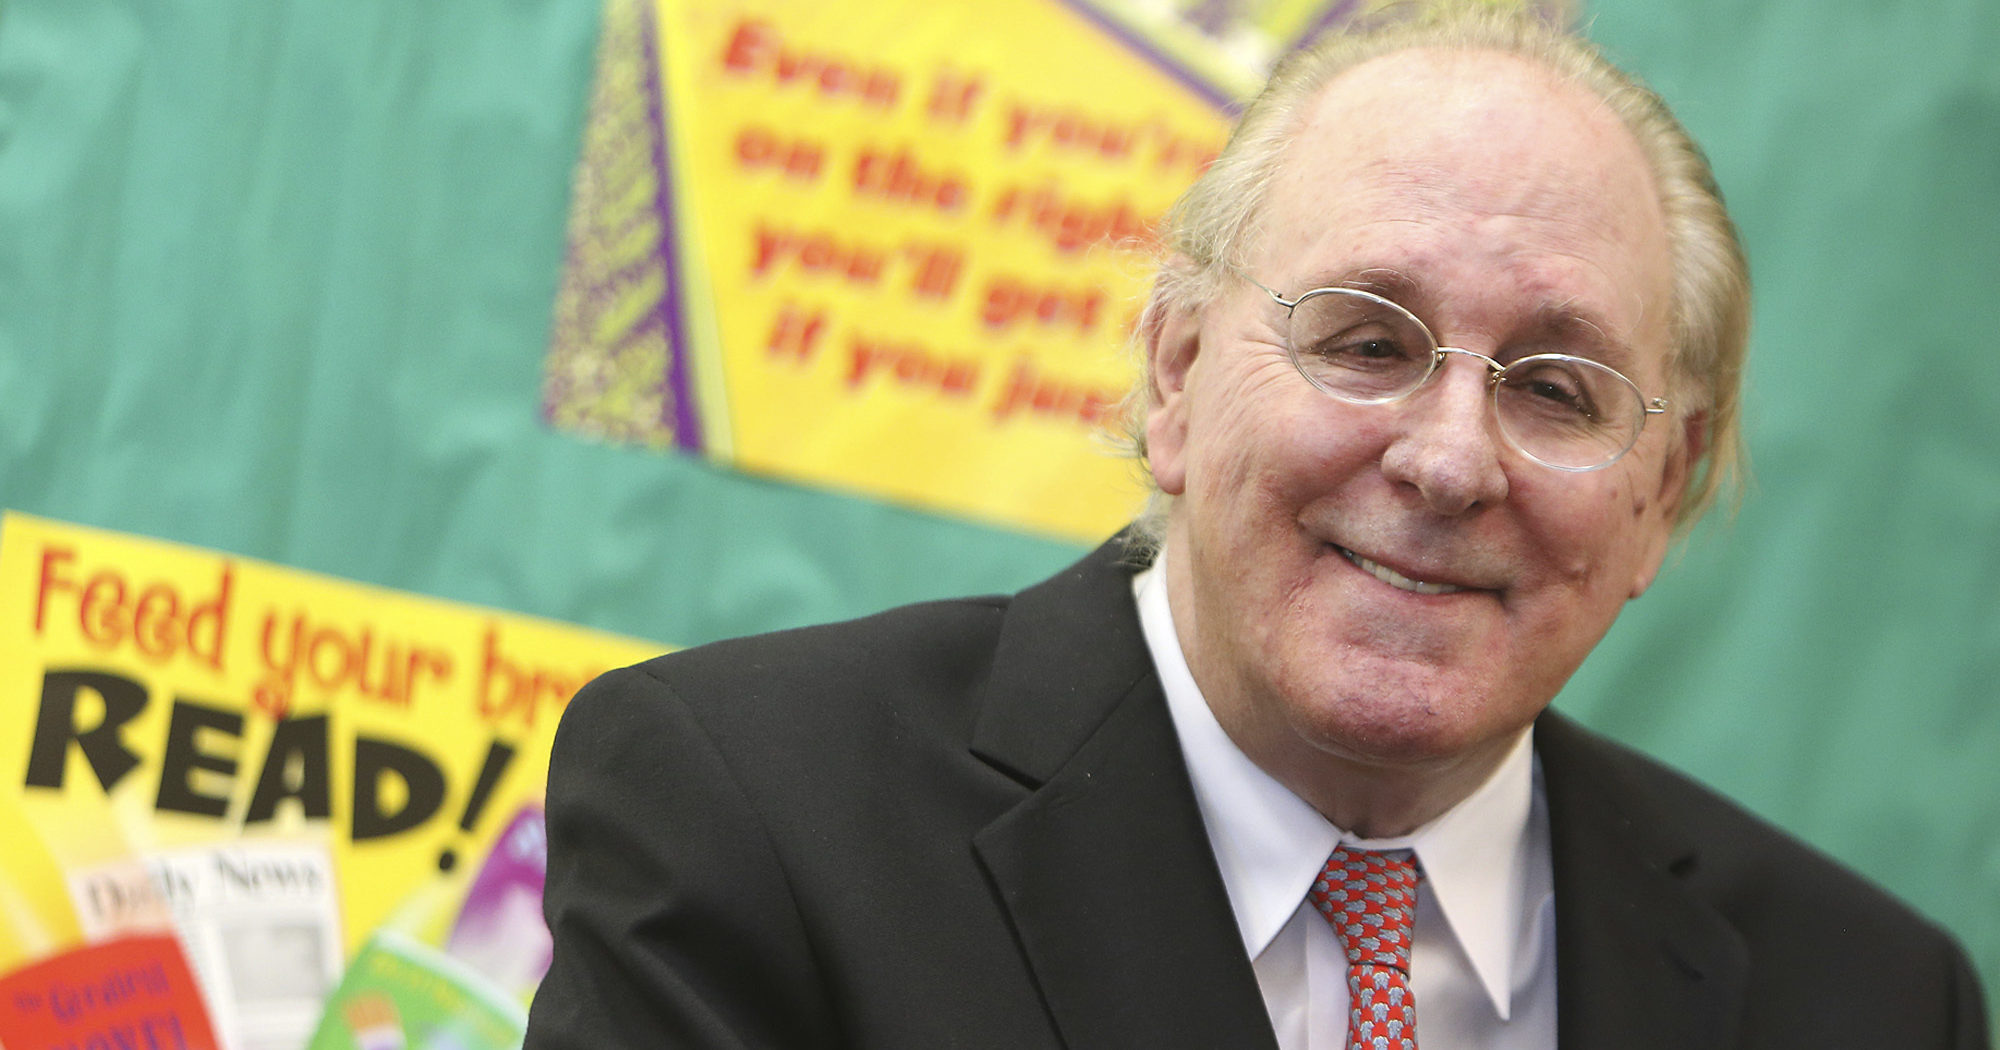 """In this April 29, 2016, file photo, """"Forrest Gump"""" author Winston Groom speaks to students at Jinks Middle School in Panama City, Florida. Groom, the author of the novel """"Forrest Gump"""" that was made into a six-Oscar winning 1994 movie, has died, an Alabama official close to the writer said on Sept. 17, 2020. He was 77."""